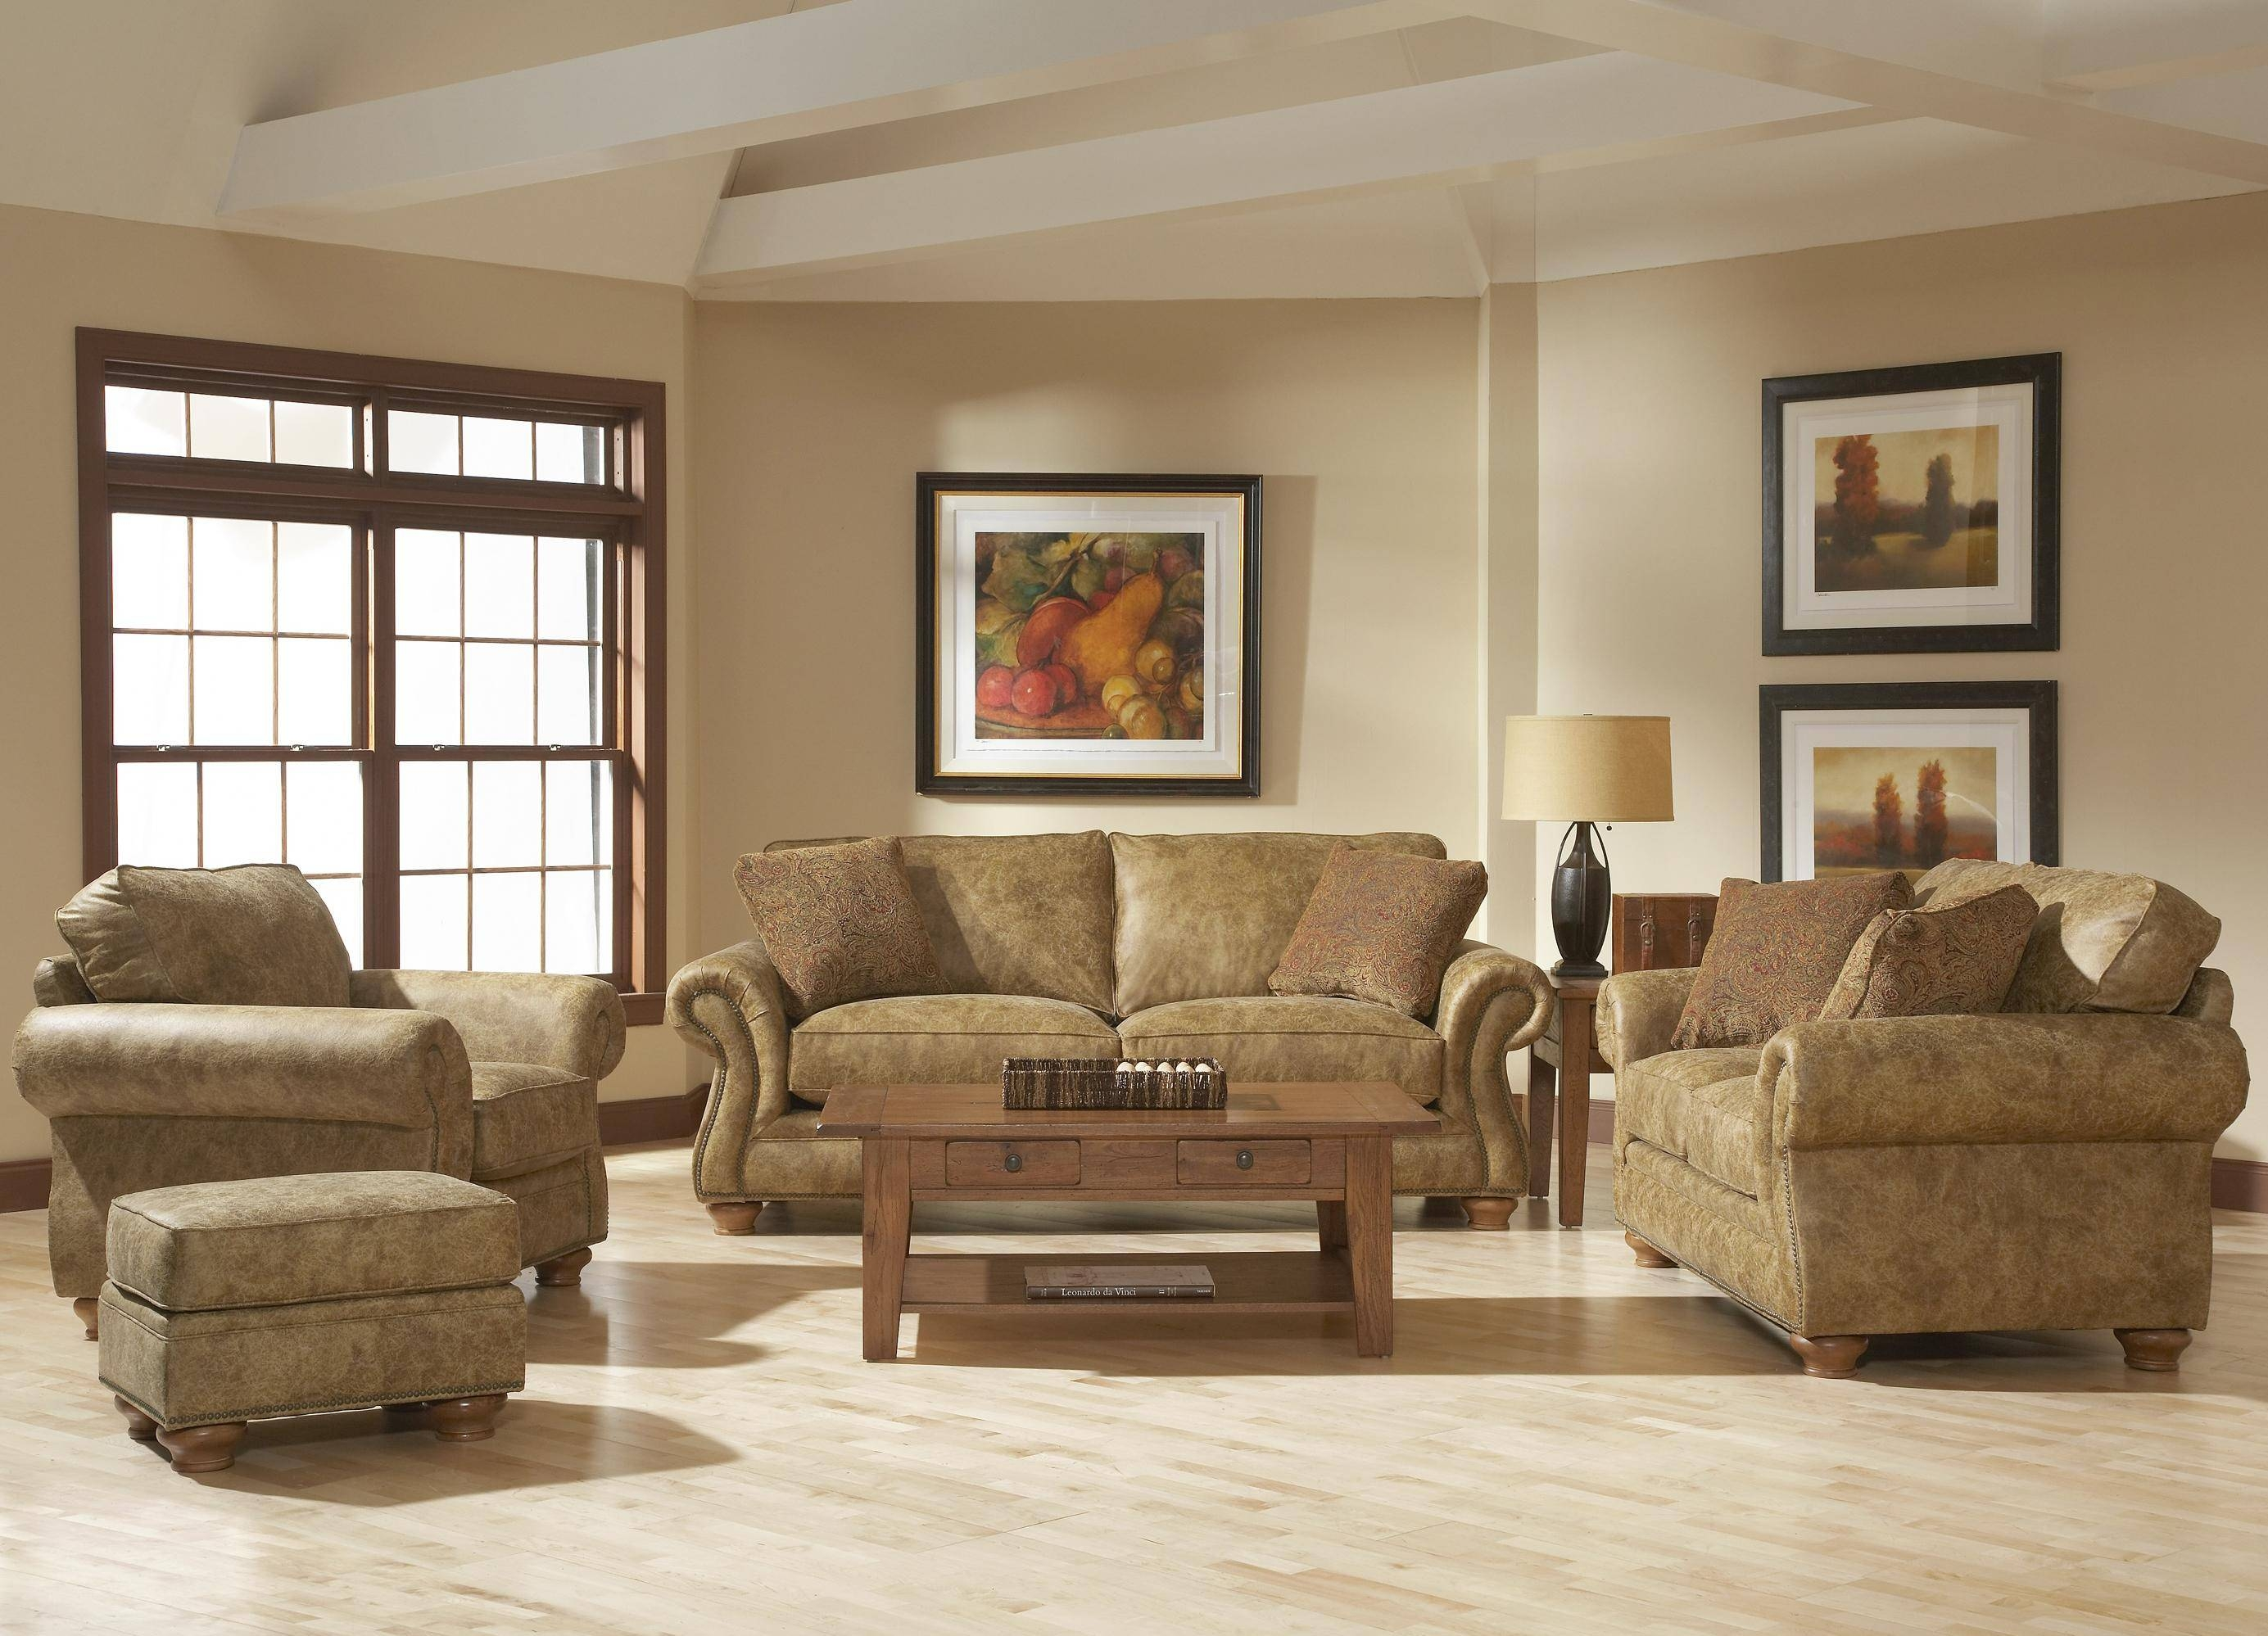 Broyhill Furniture Laramie 3 Piece Wedge Sectional Sofa - Wayside for Broyhill Sectional Sofa (Image 6 of 30)